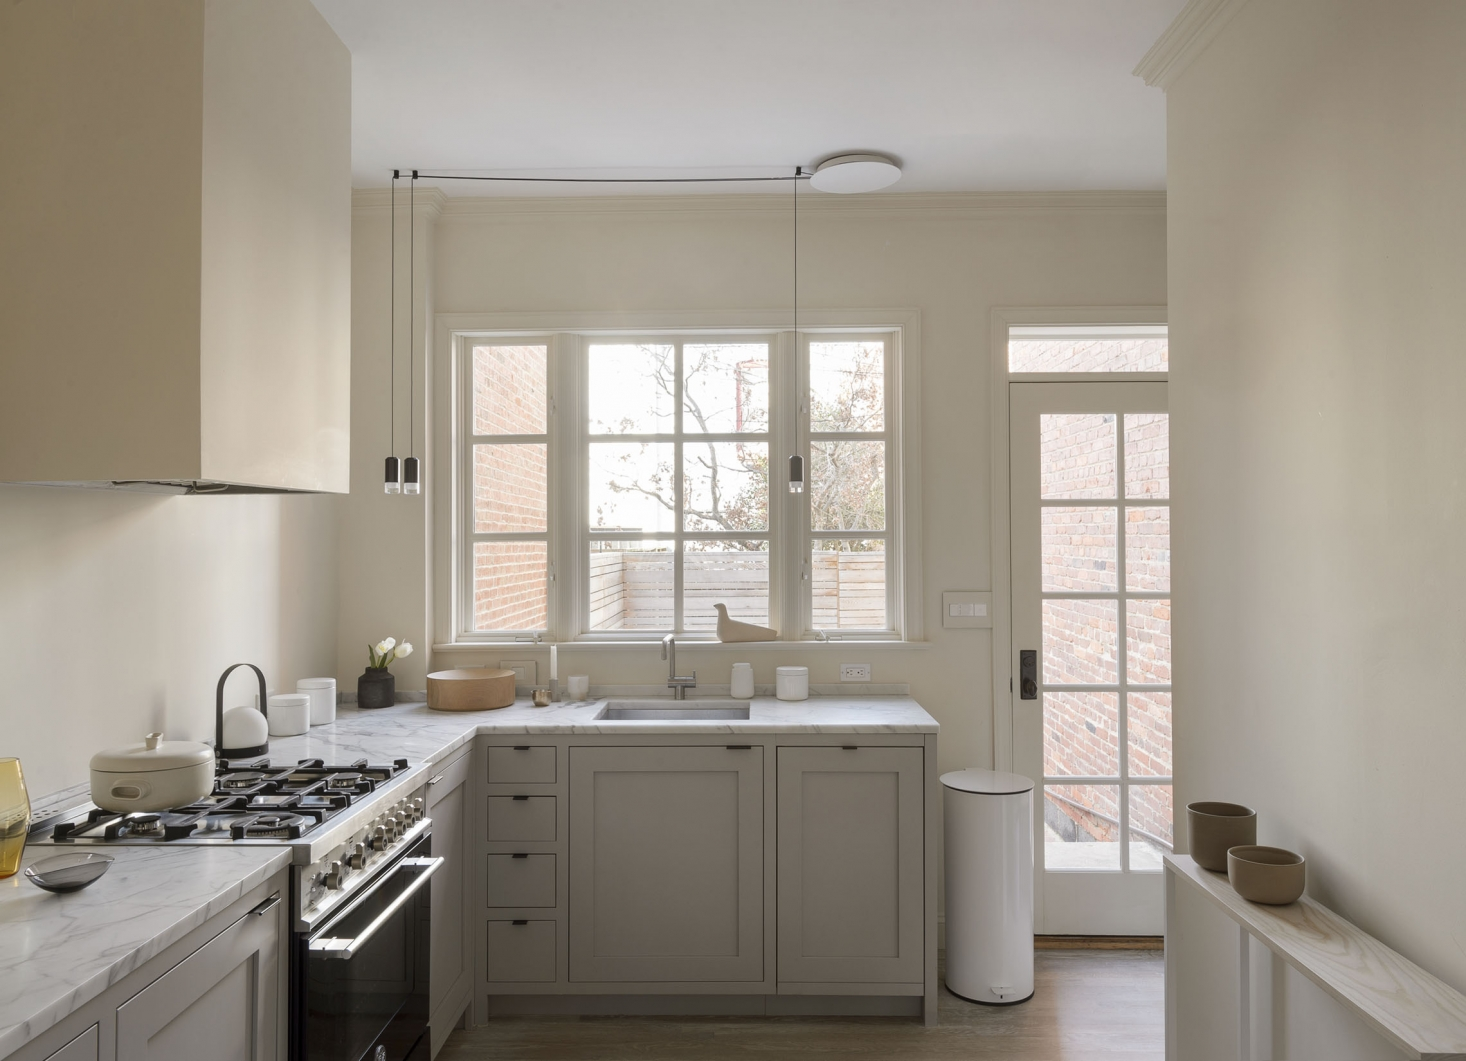 10 Things Nobody Tells You About Renovating Your Kitchen